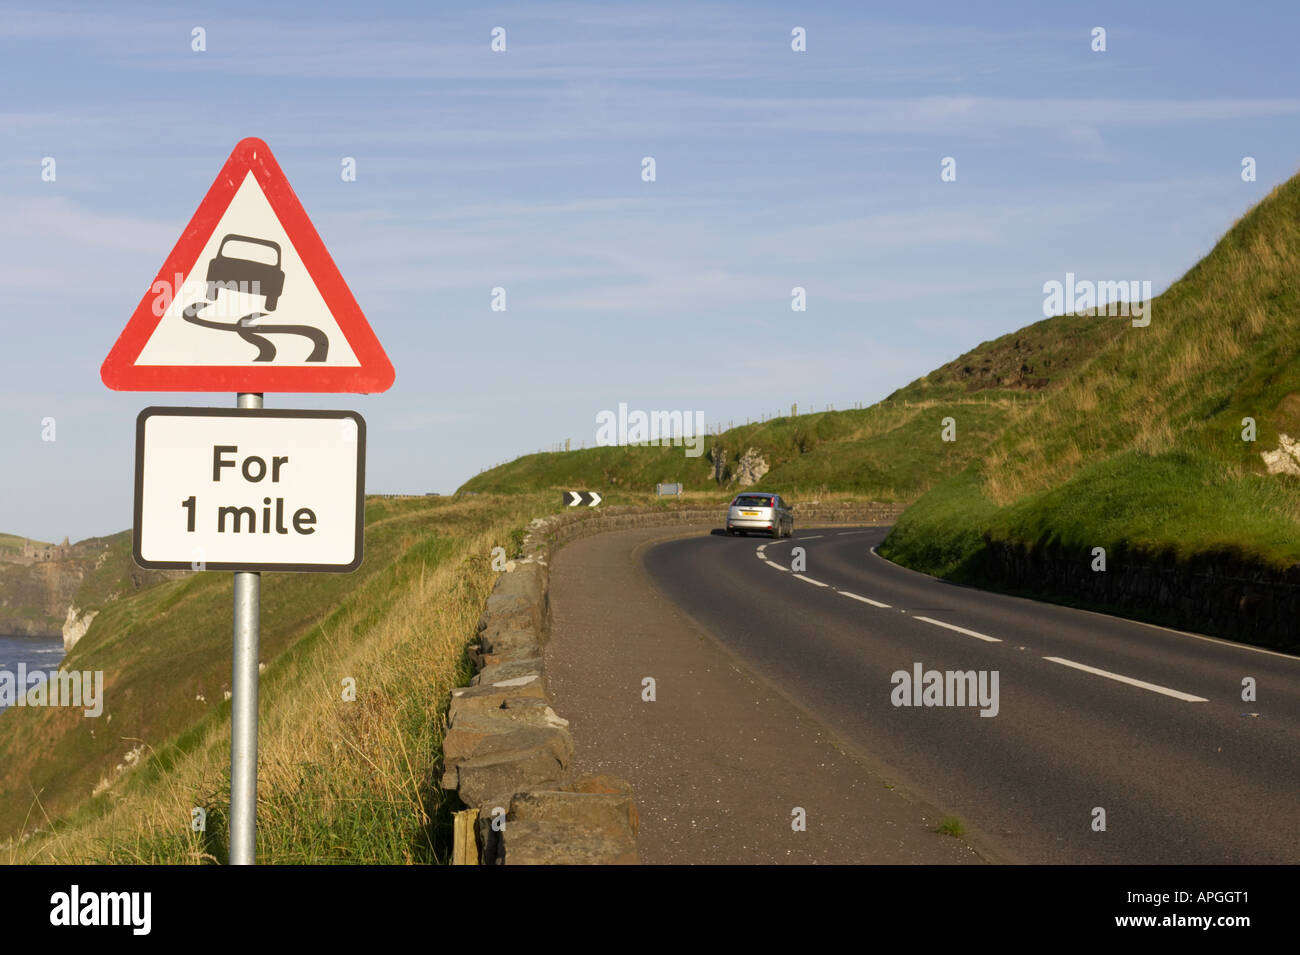 triangular red lined slippery road for one mile warning road sign on the A2 coast road with car at bend near Dunluce Castle - Stock Image